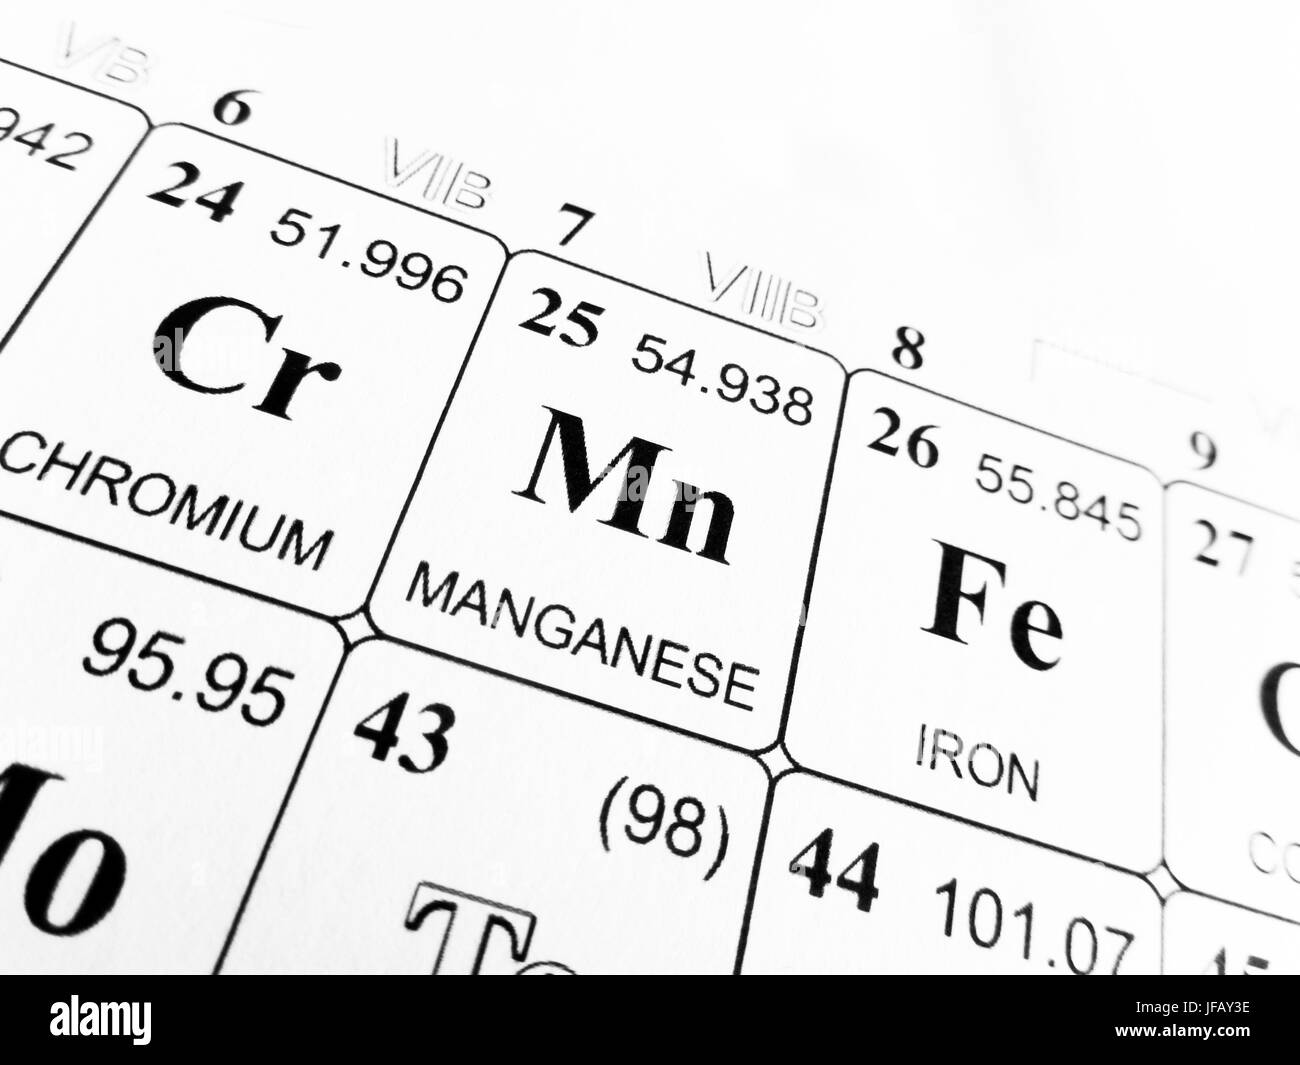 Manganese on the periodic table of the elements stock photo manganese on the periodic table of the elements gamestrikefo Choice Image